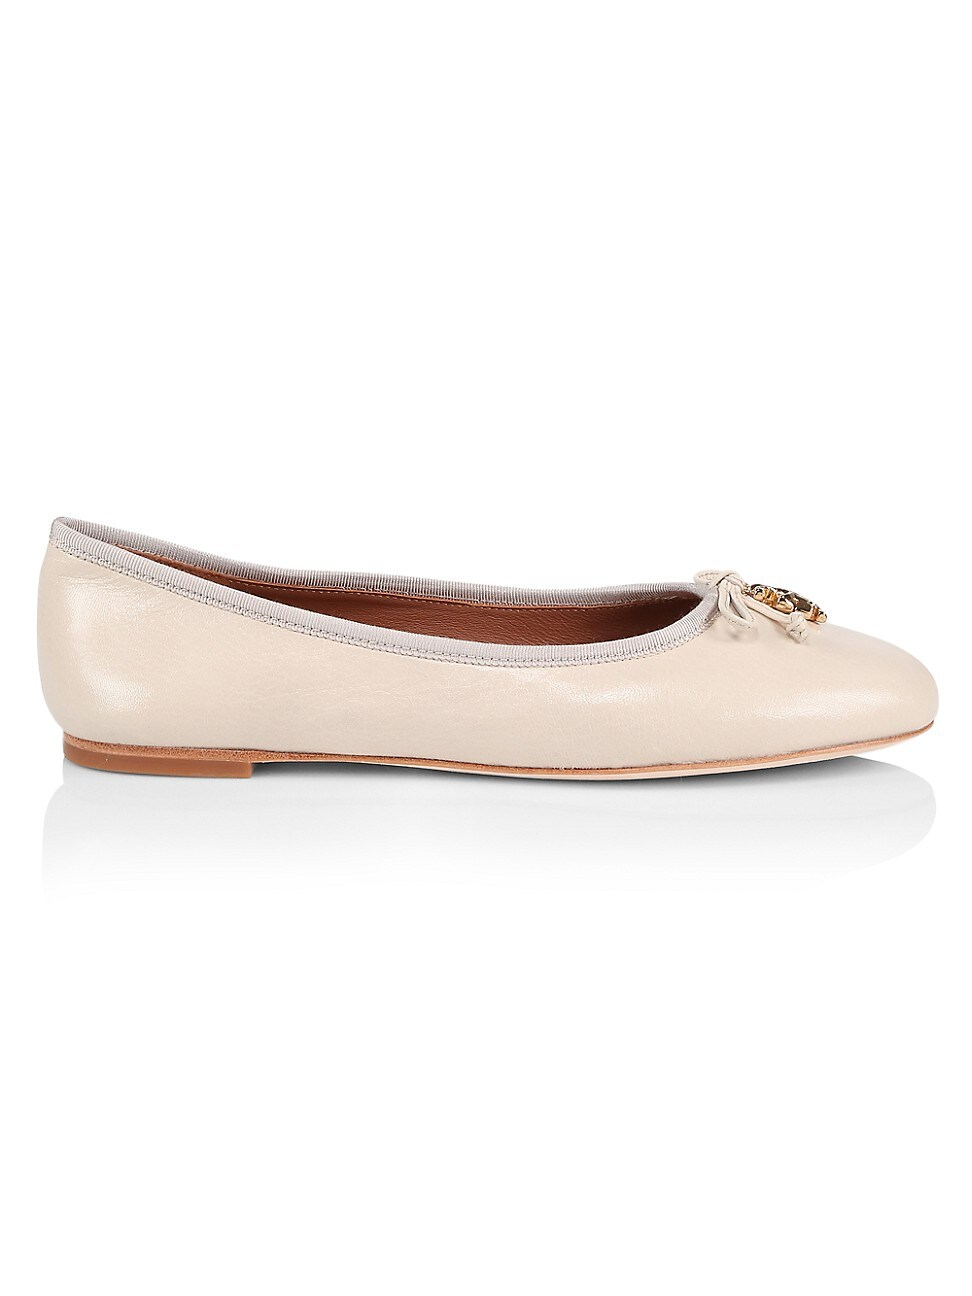 Tory Burch WOMEN'S TORY CHARM LEATHER BALLET FLATS